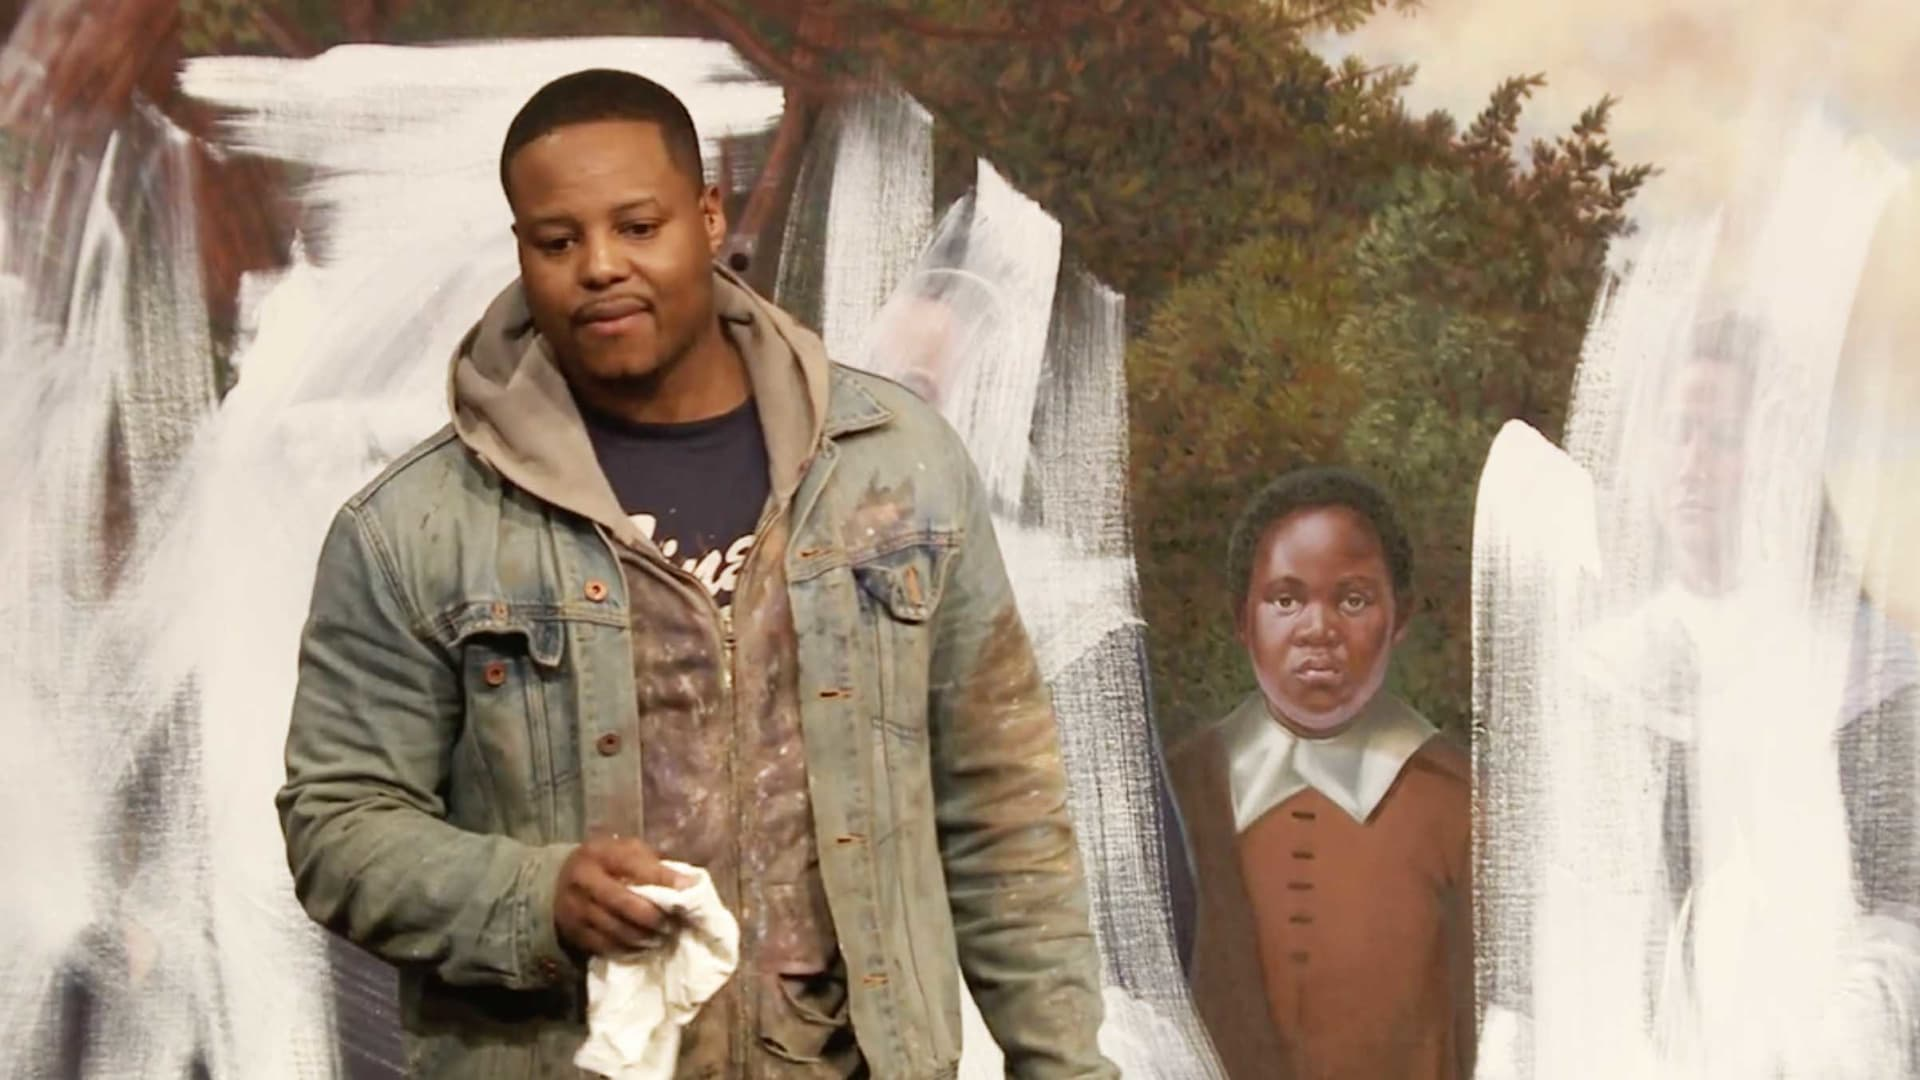 Titus Kaphar's TED Talk: Can Art Amend History?